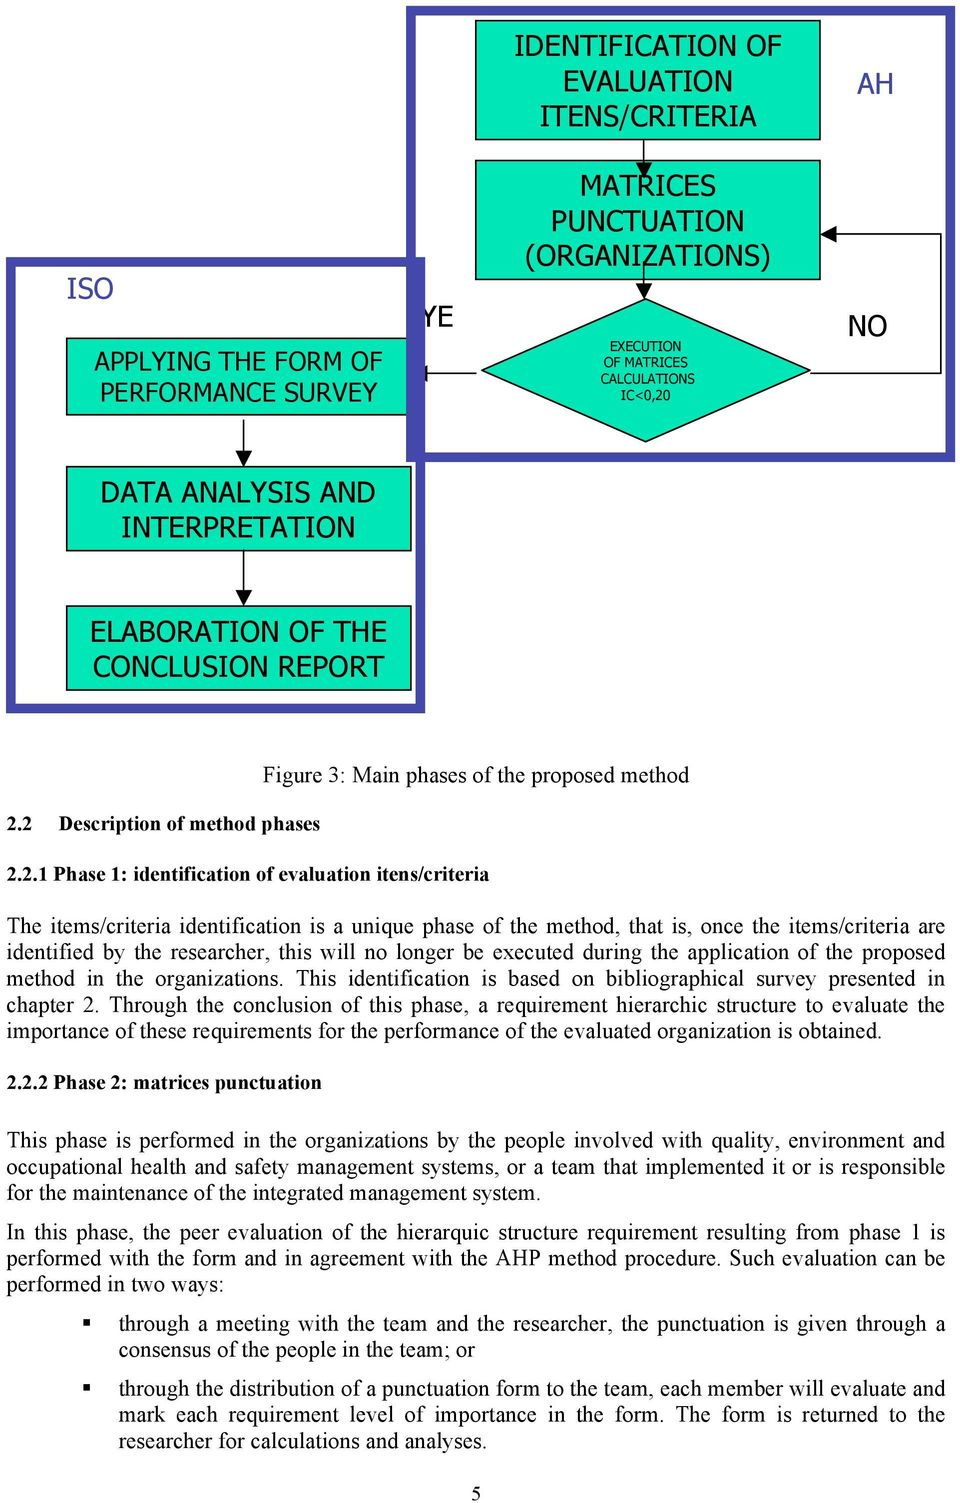 2 Description of method phases Figure 3: Main phases of the proposed method 2.2.1 Phase 1: identification of evaluation itens/criteria The items/criteria identification is a unique phase of the